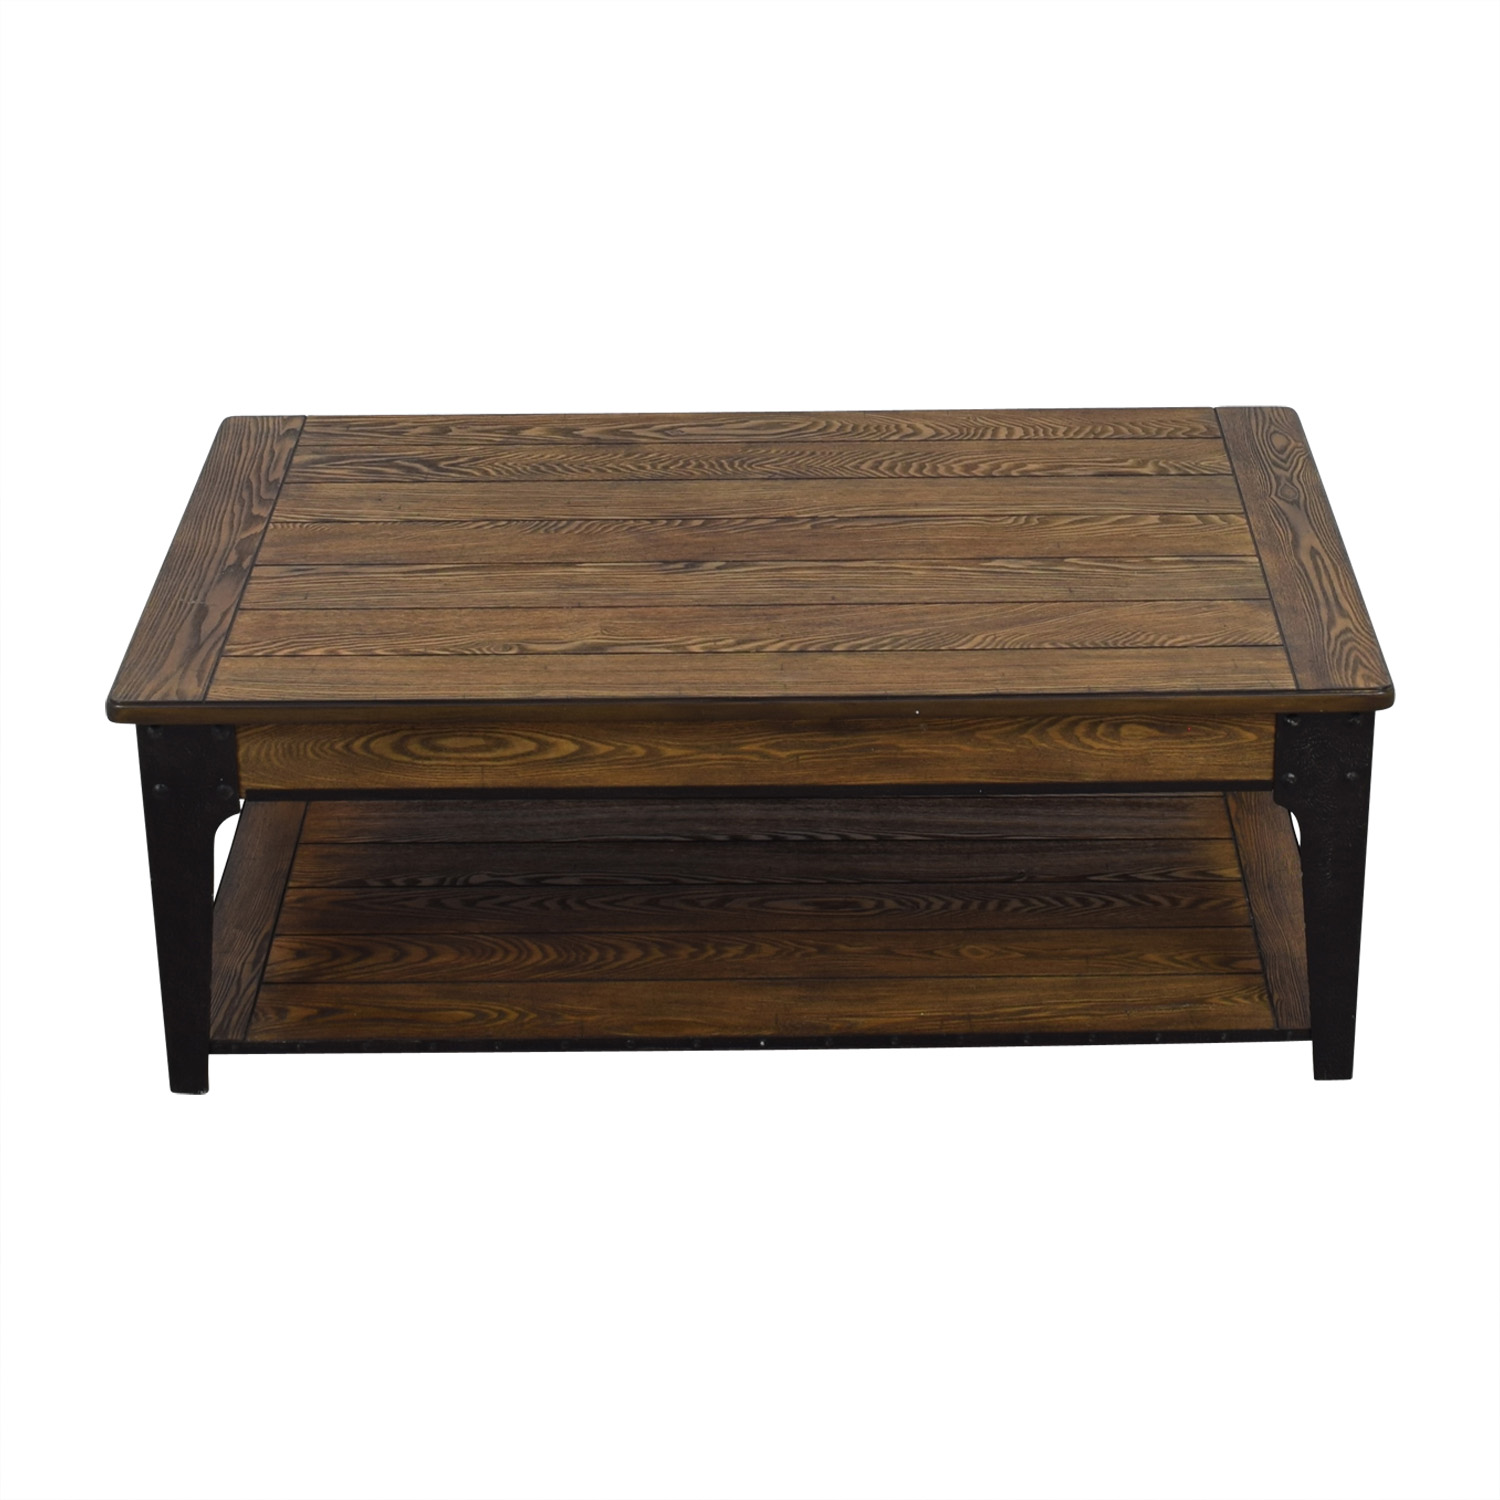 buy Magnussen Lakehurst Lift-Top Coffee Table with Wheels Magnussen Tables